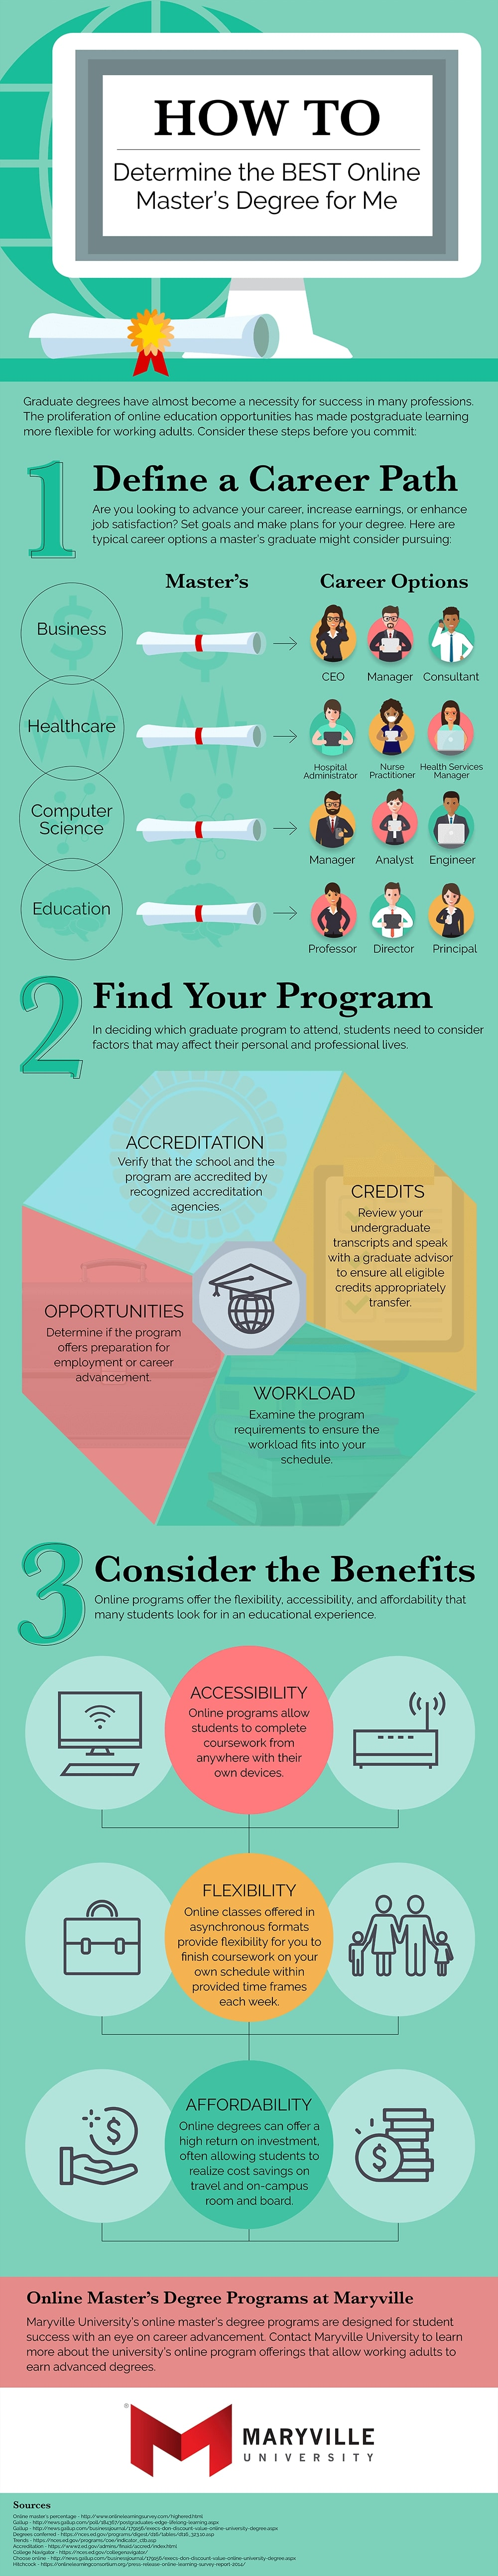 How to Determine the Best Online Master's Degree in 3 Steps Infographic